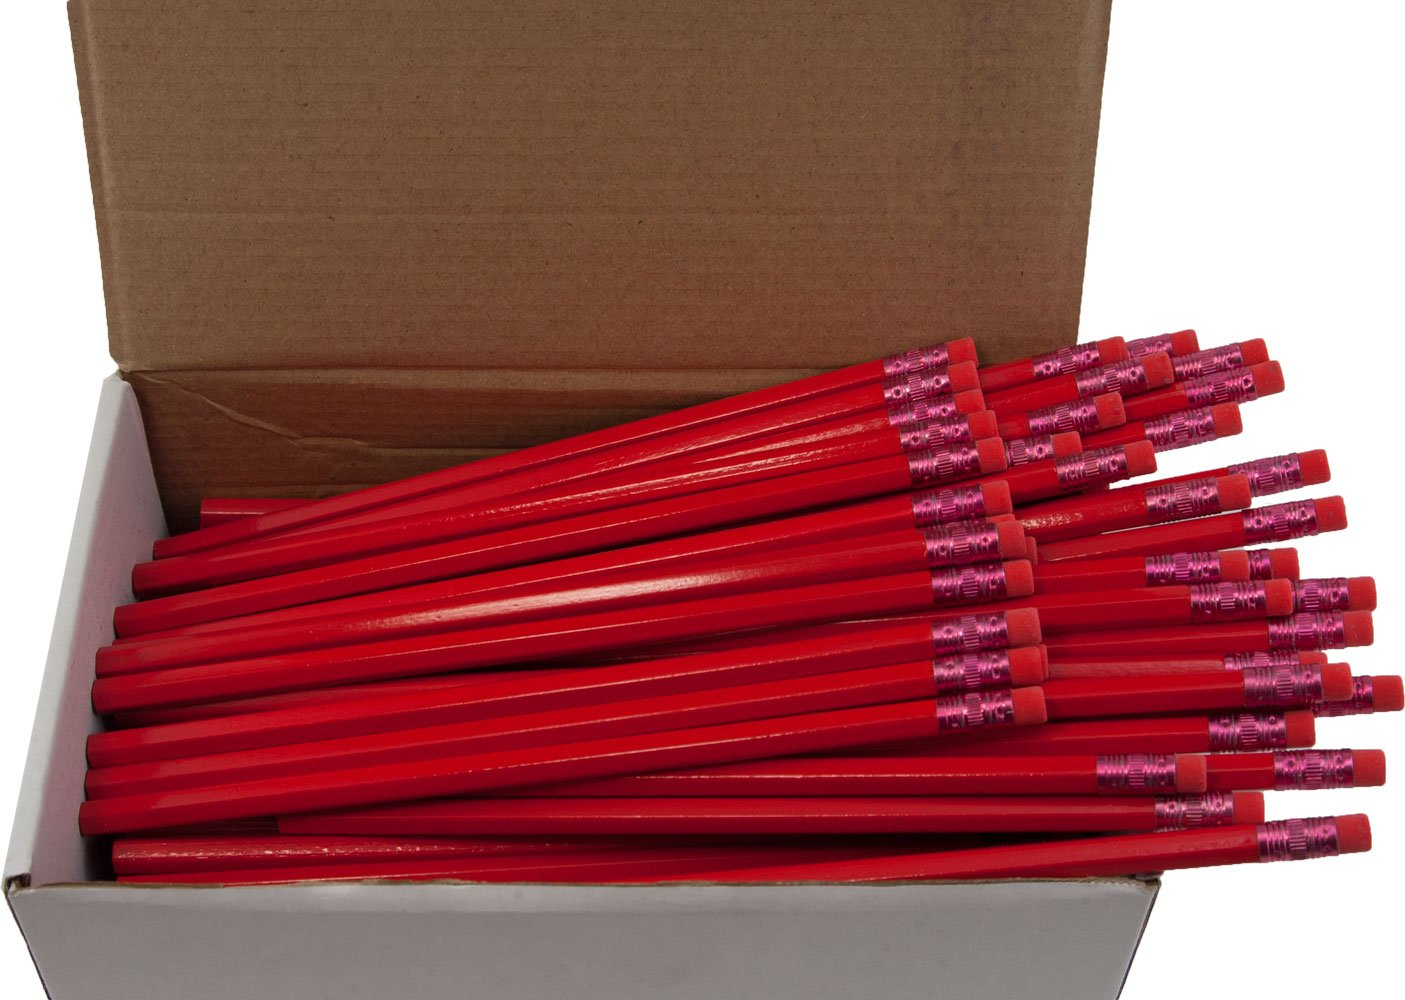 Hex Pencils (Full Size Hex Pencil with #2 Lead Available in a Variety of Colors) (Tested Non Toxic) (Latex Free Eraser) (Classroom Pencils) (Bulk Box of 144) (Red) (Black Lead)